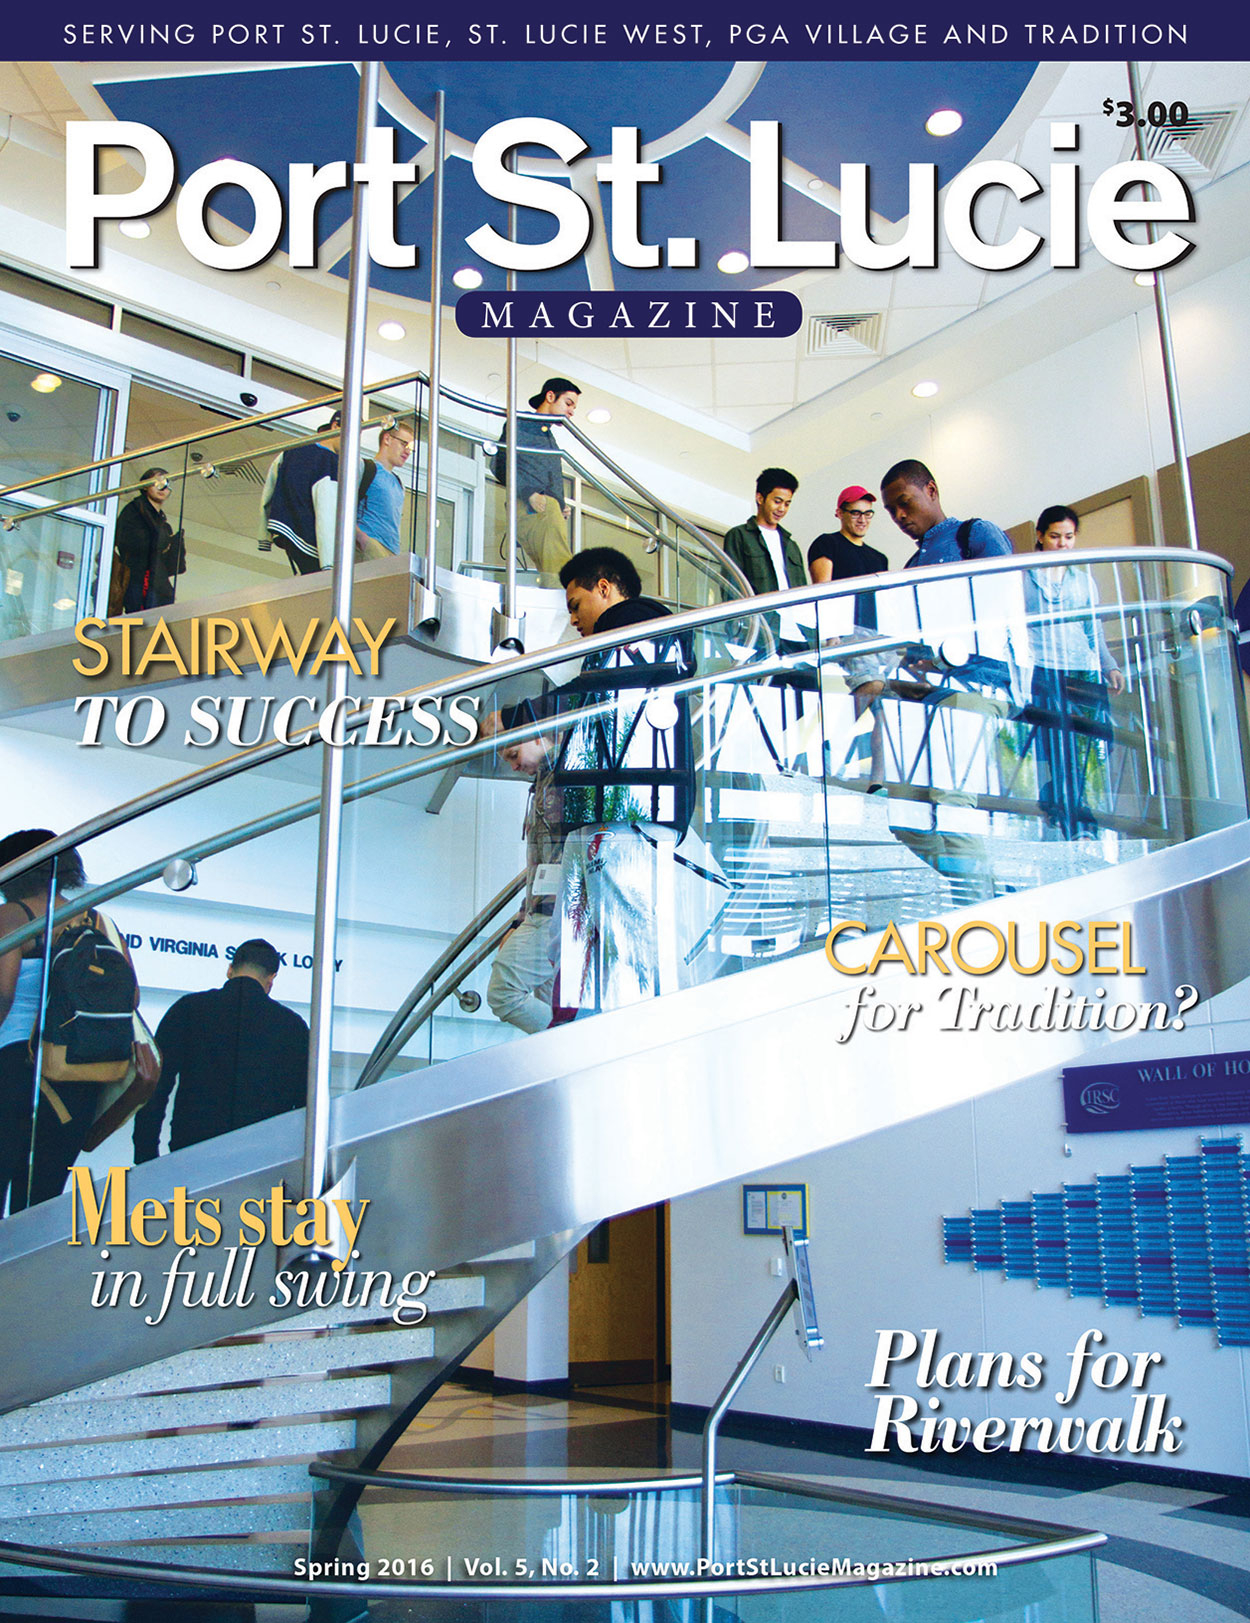 Port St. Lucie Magazine - Vol. 5, No. 2